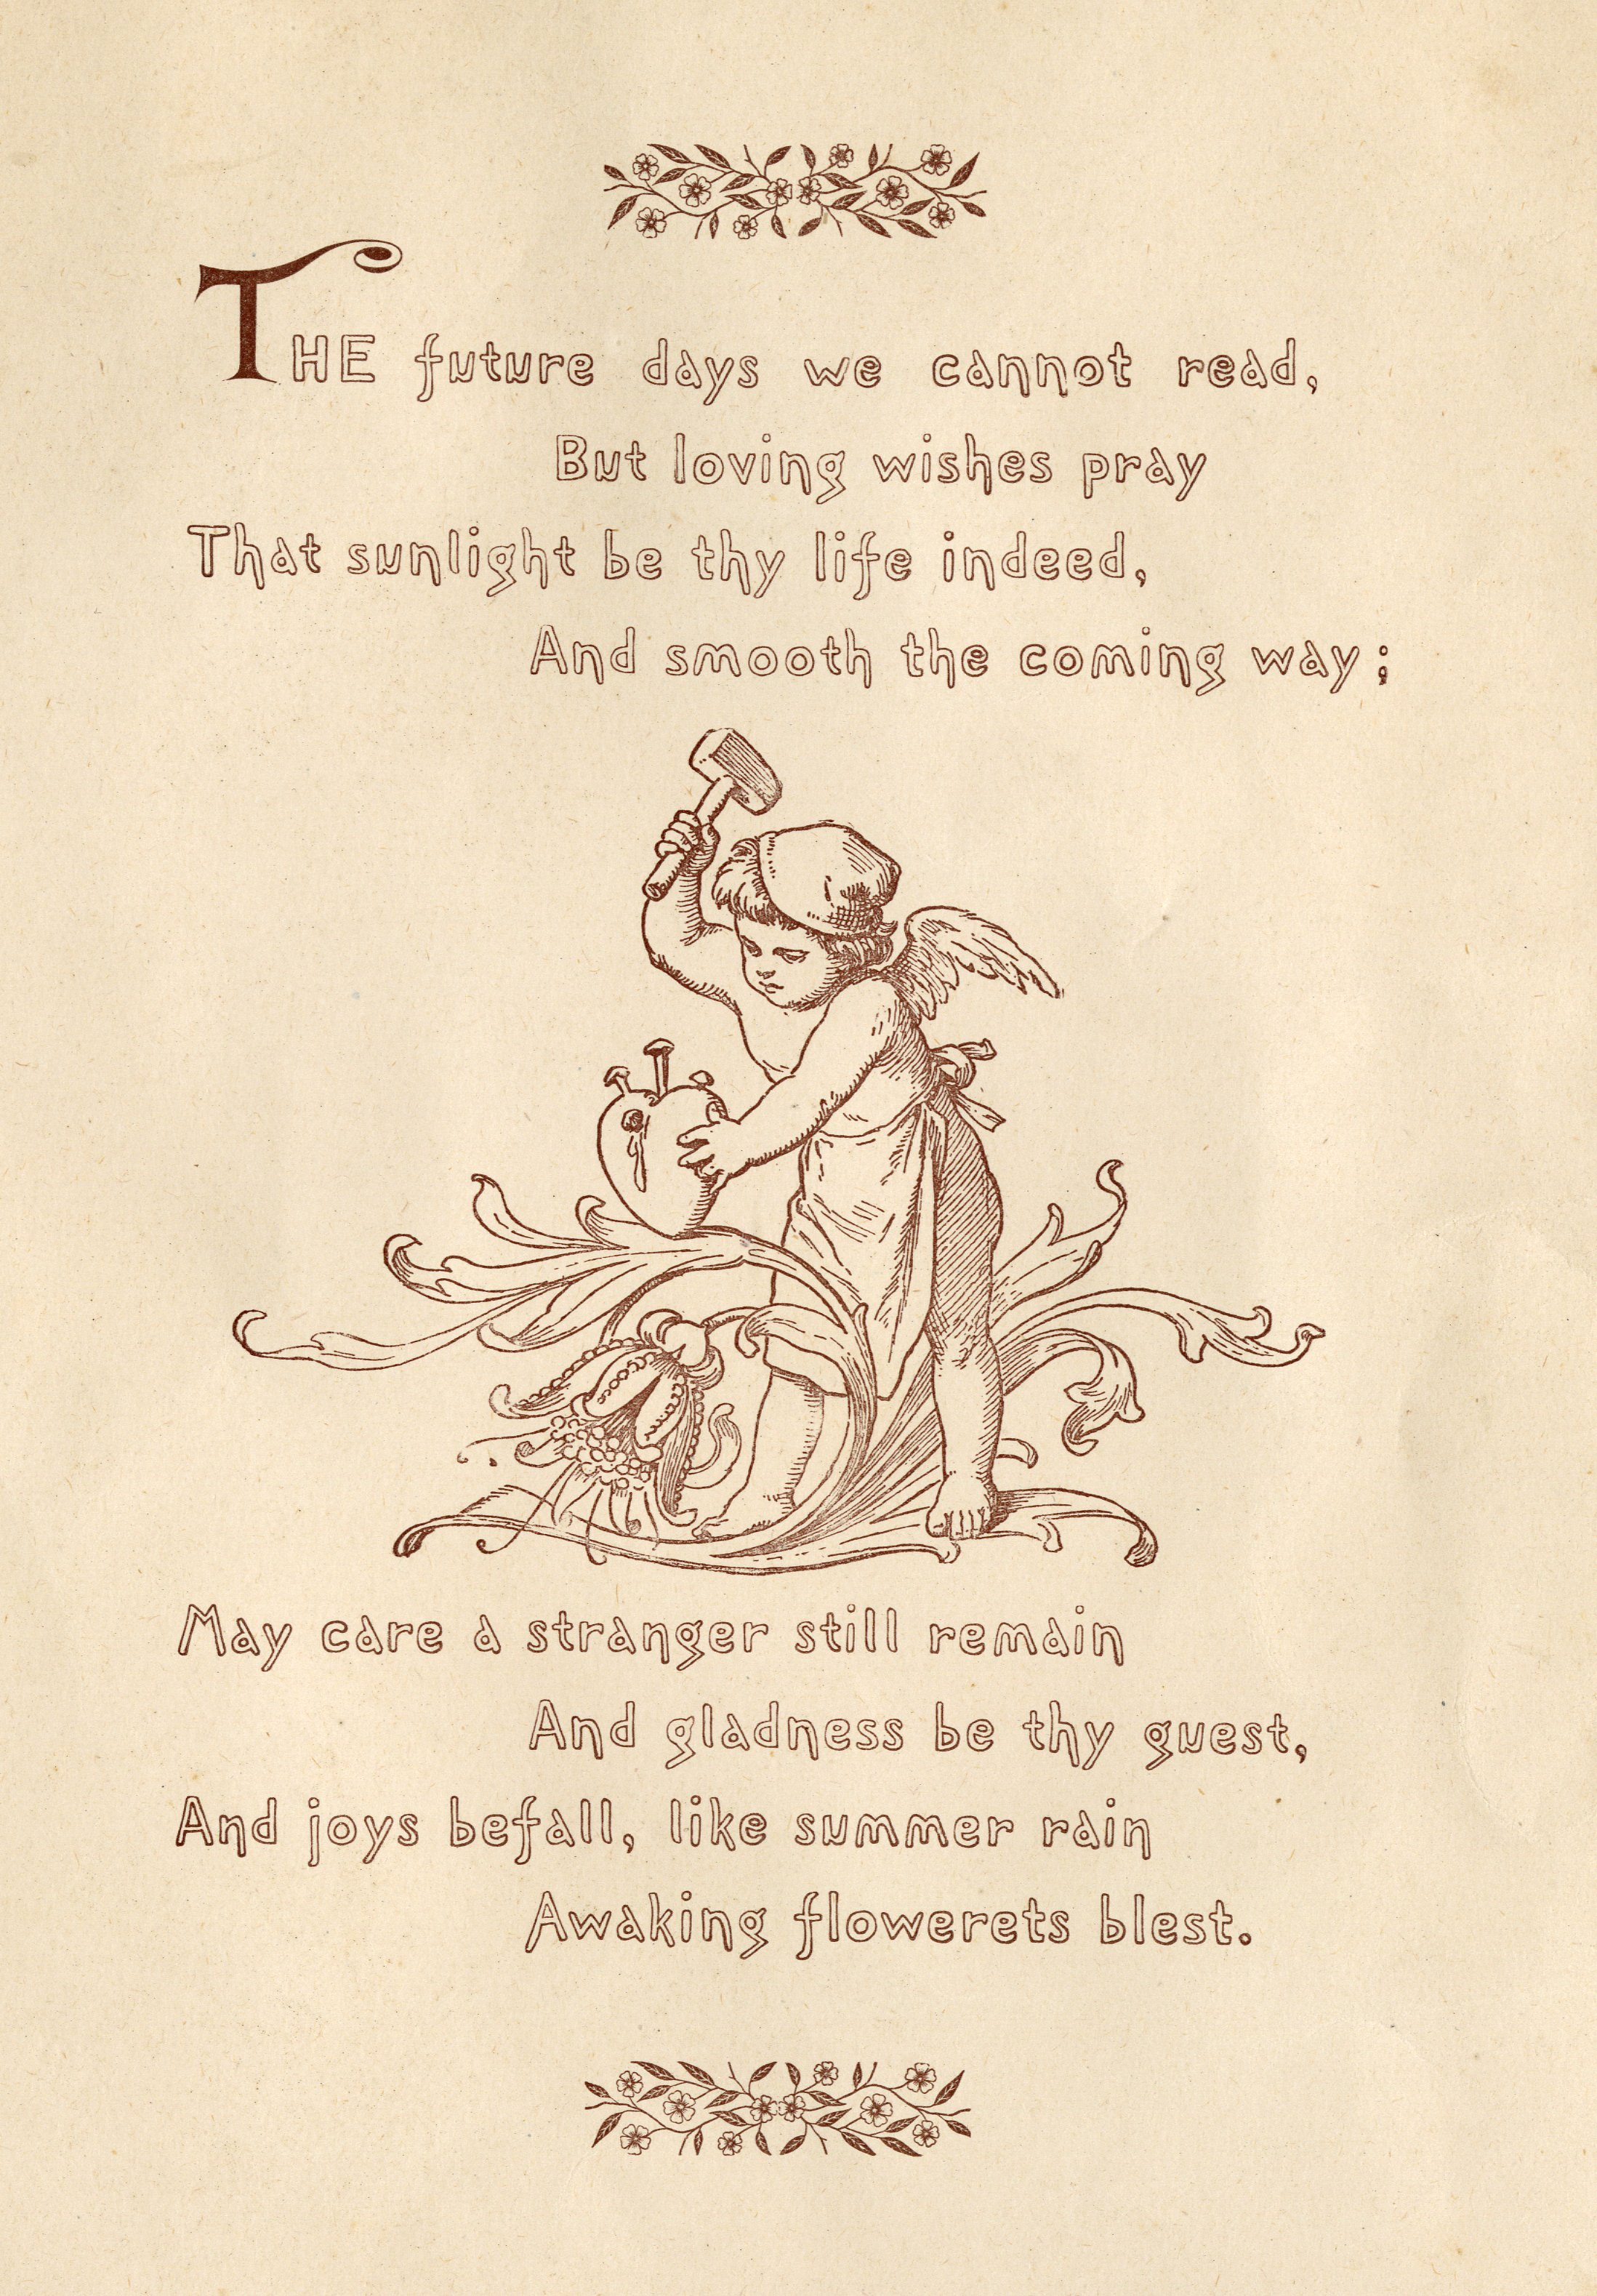 drawing of Cupid hammering a heart surrounded by poem text